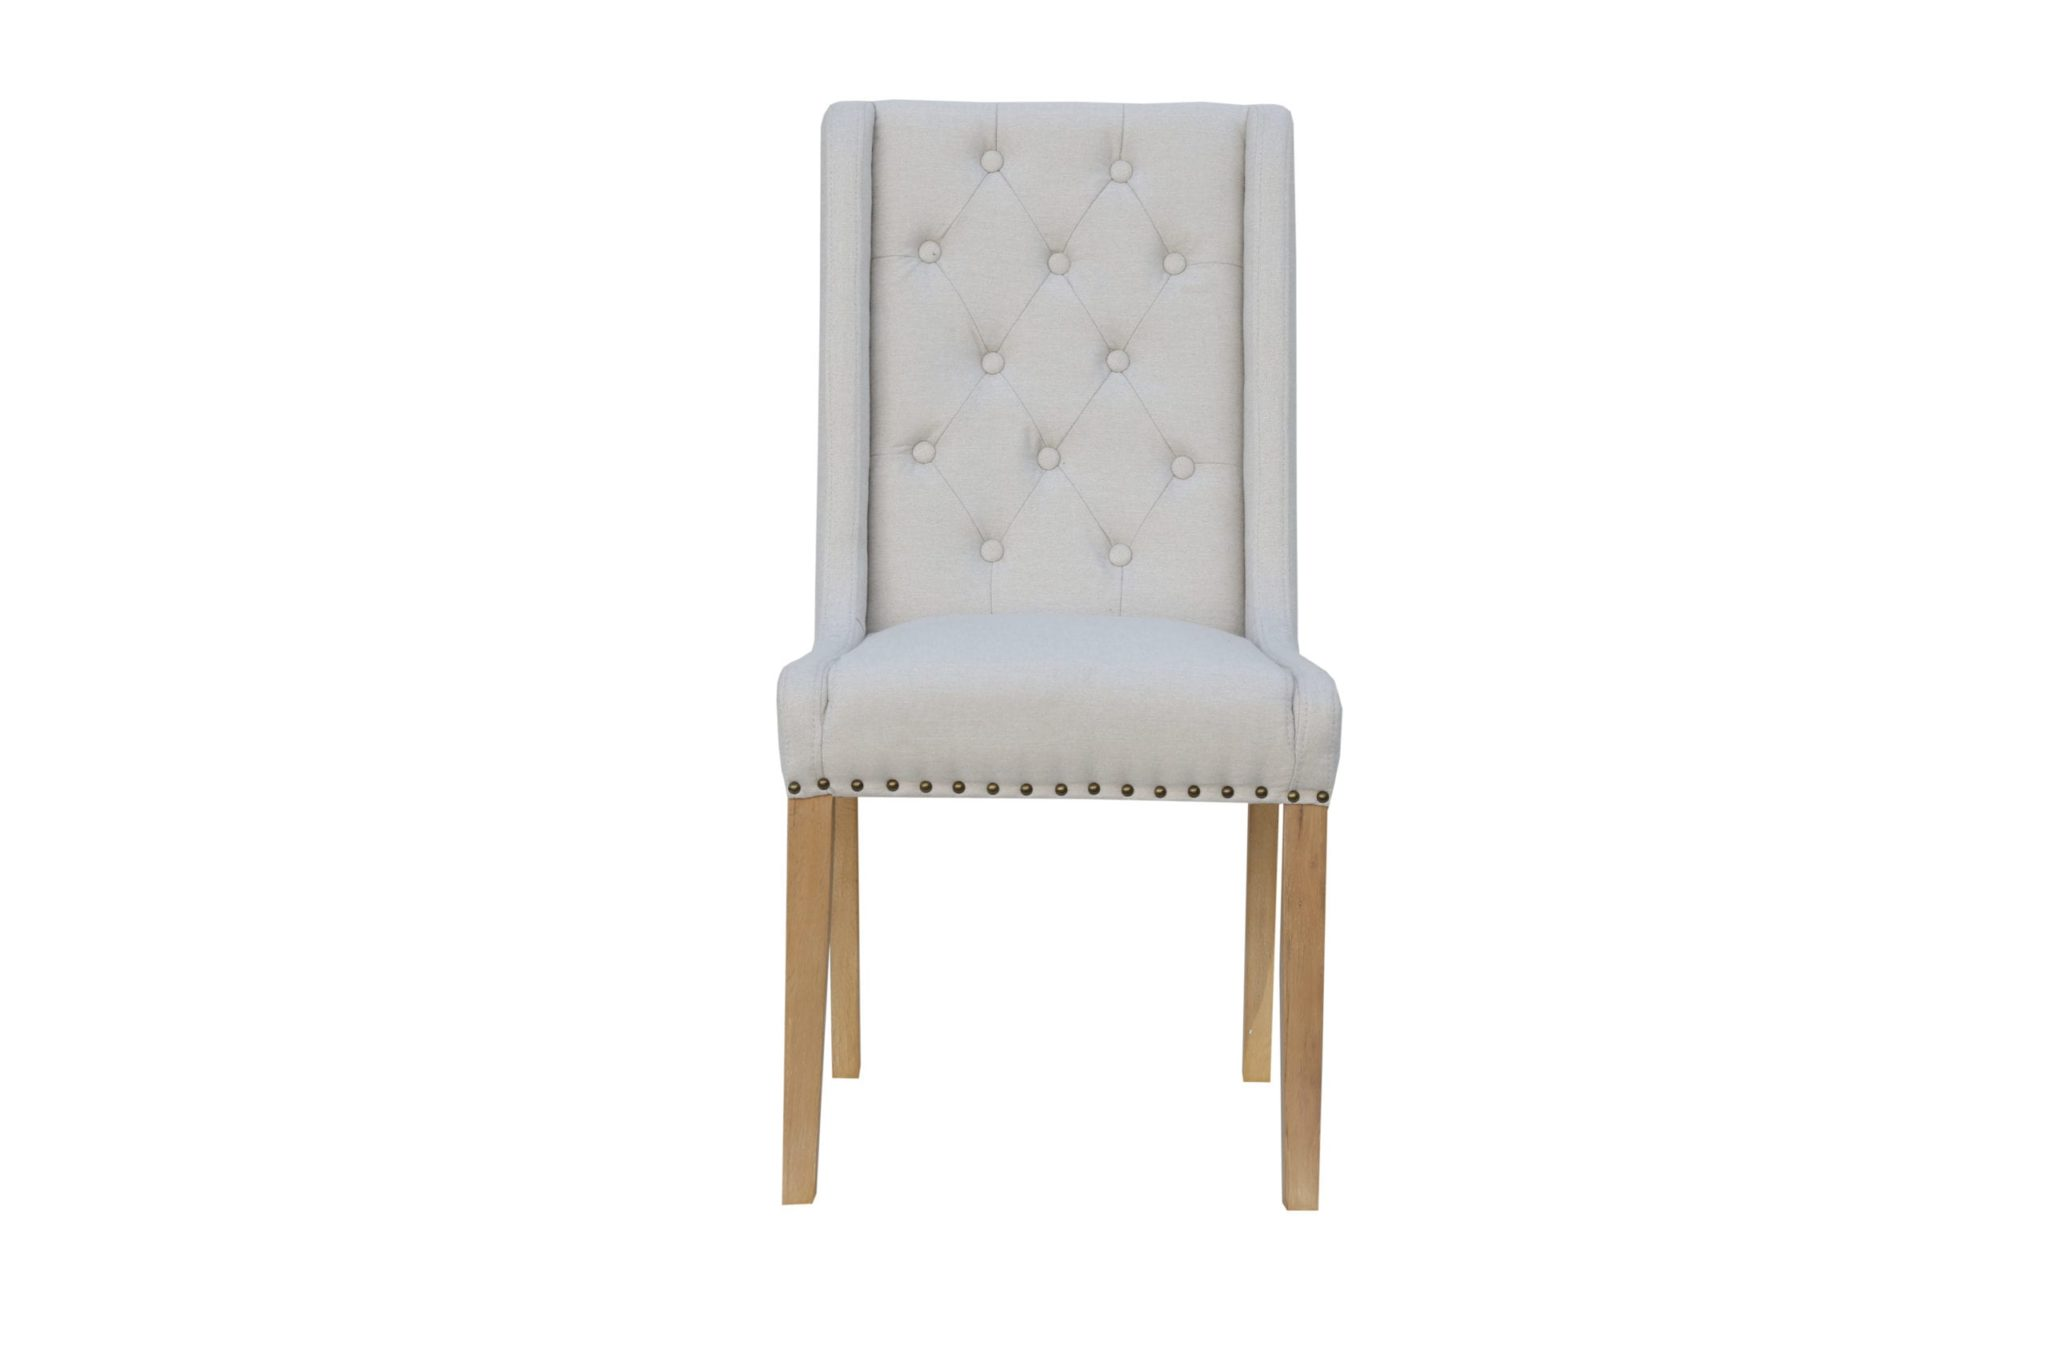 button studded back chair colour natural with side supports